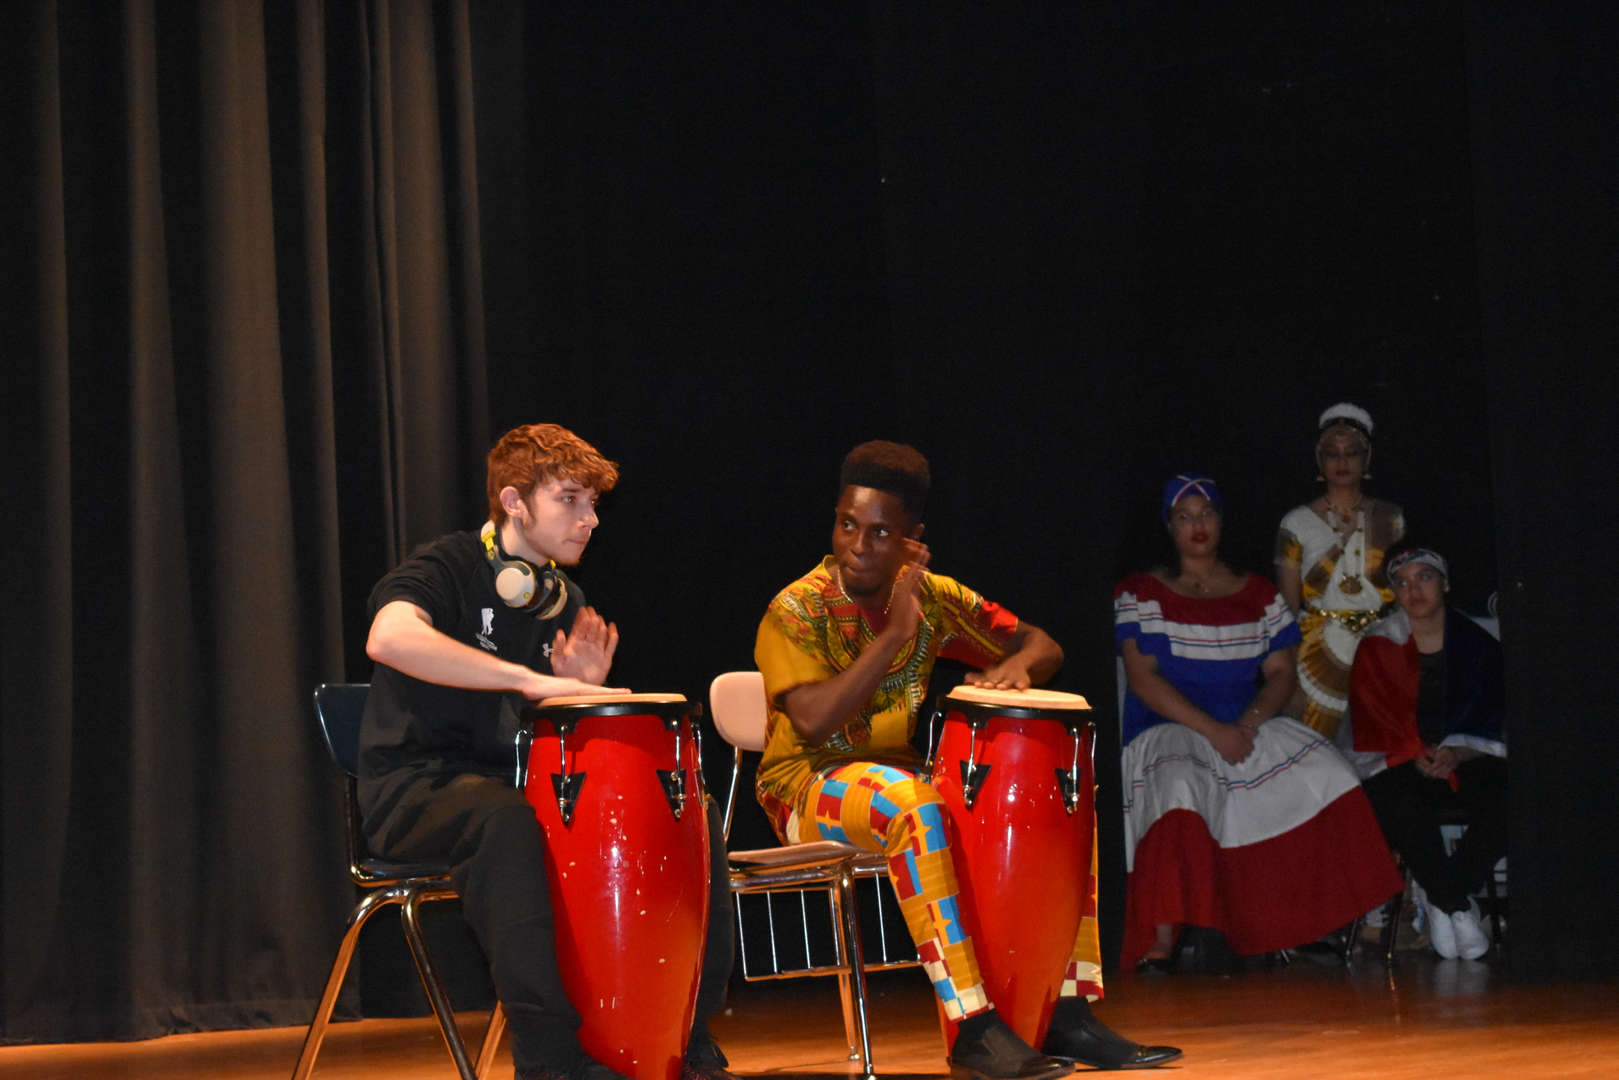 students play the bongo drums on stage